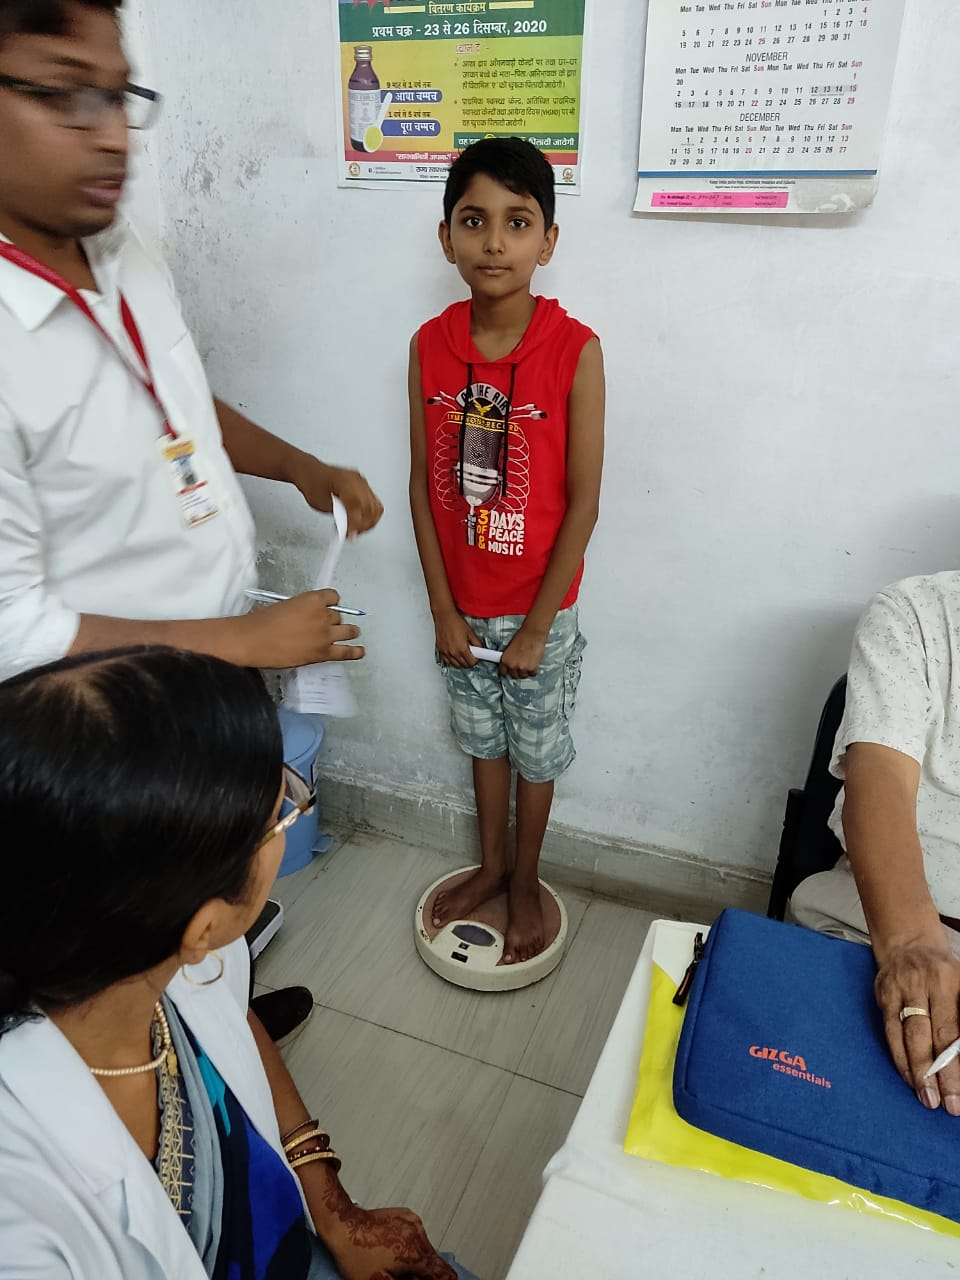 Height and weight measurement in OPD Under Poshan Mahh 11.9.21